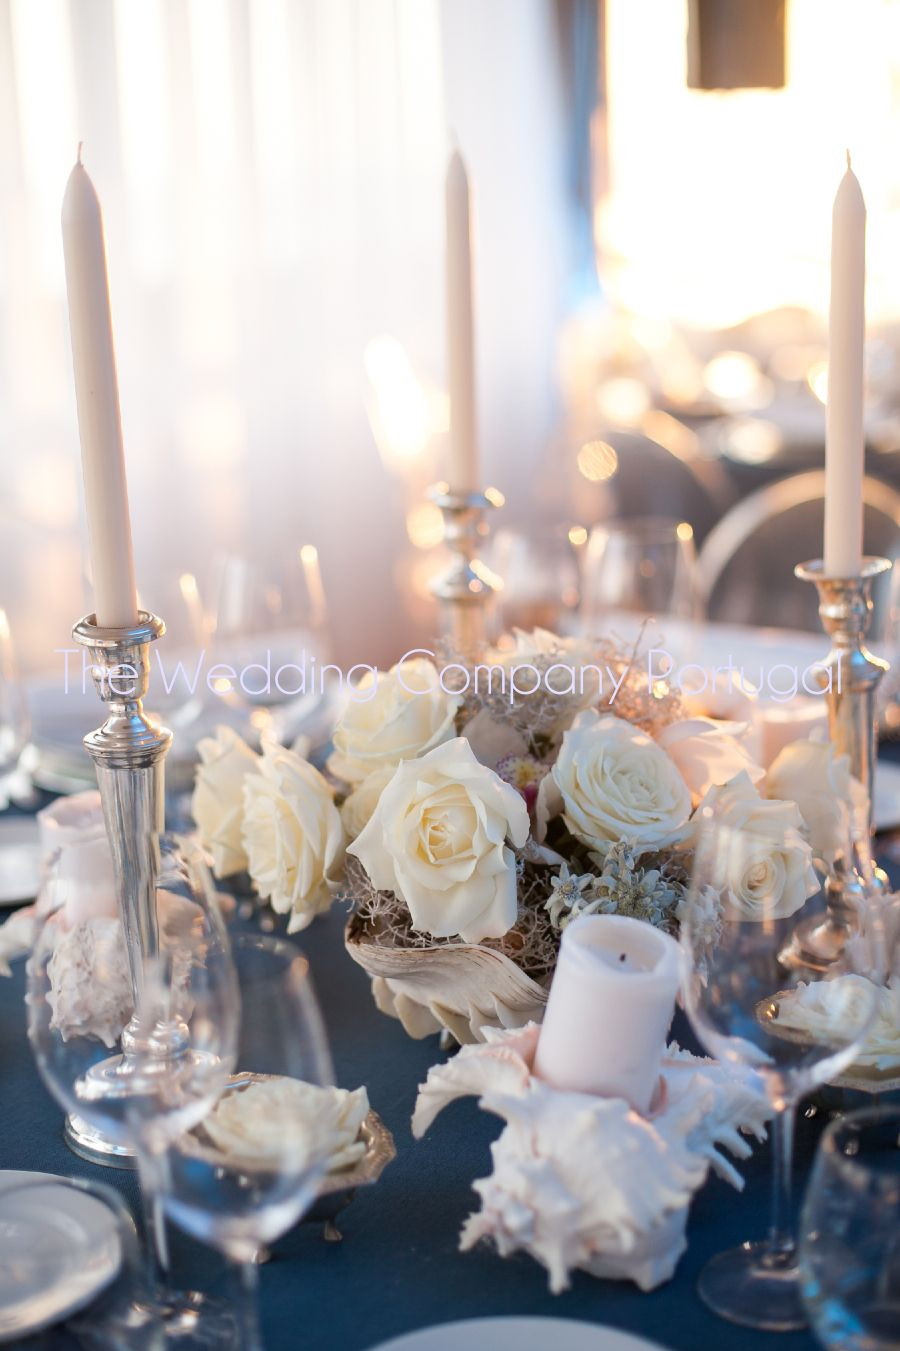 Seaside themed glamorous dinner party. Seaside inspired flowers and table settings.  Blue and white decor.  Private event by The Wedding Company - Portugal.   Photo by TWC.